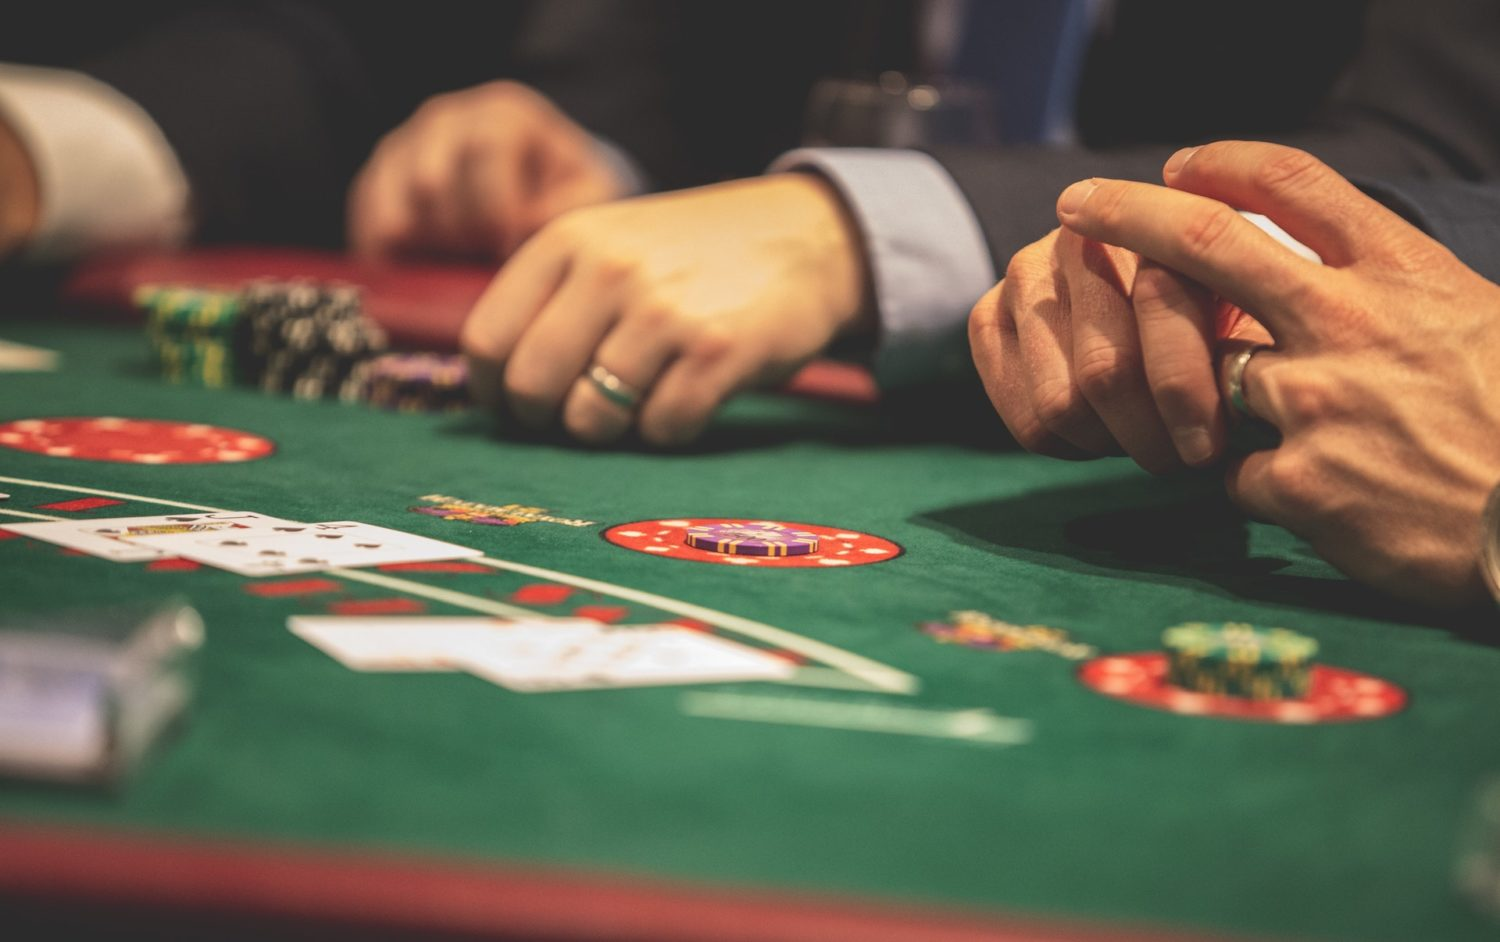 Want To Make Millions From Gambling Play These Games On Sbobet La Weekly